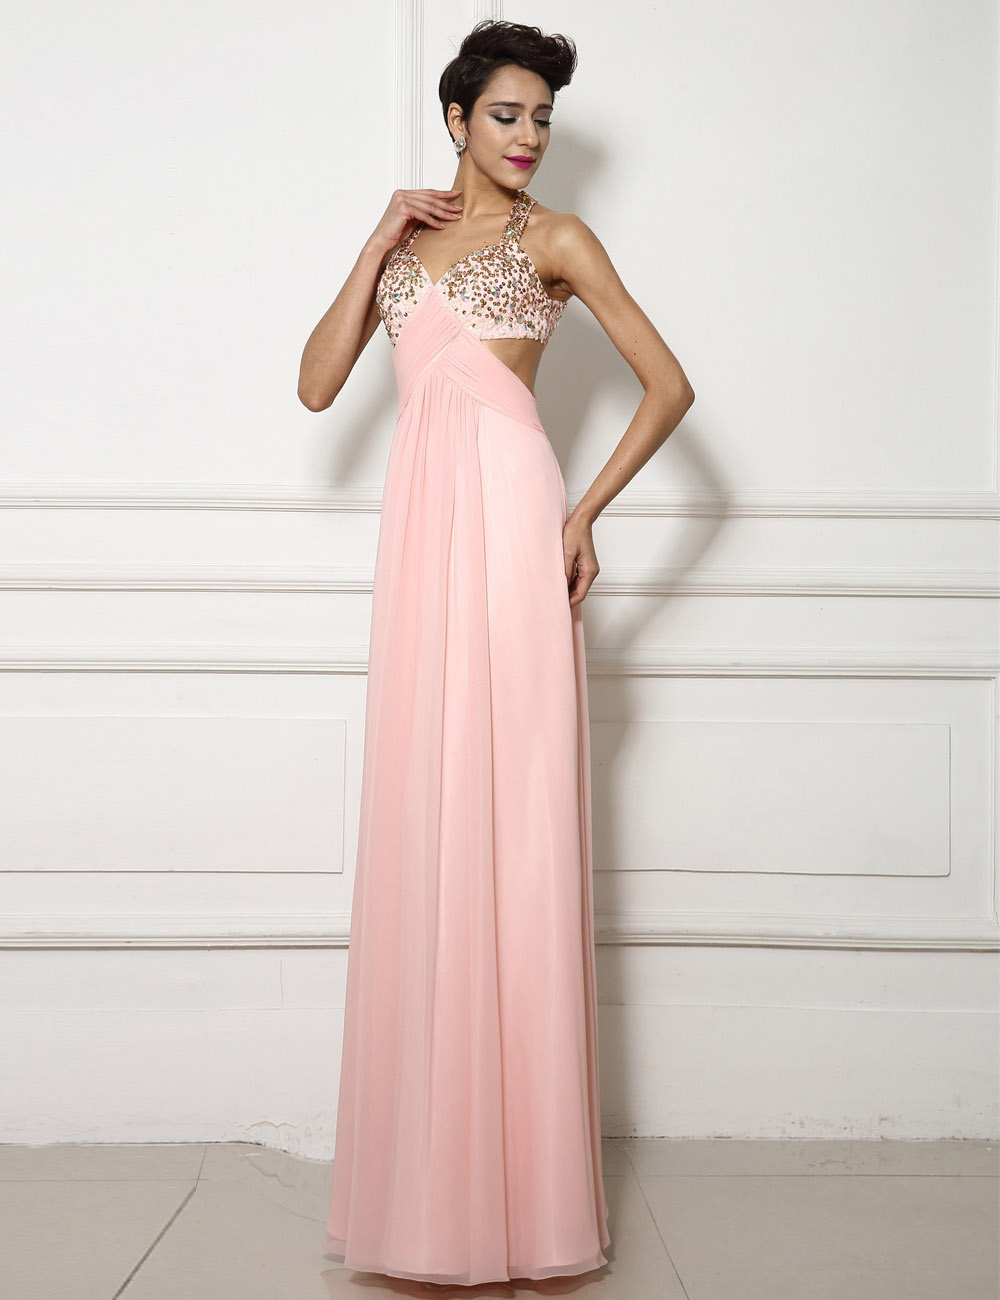 Sheath/Column V-neck Sweep/Brush Train Chiffon Prom Dress